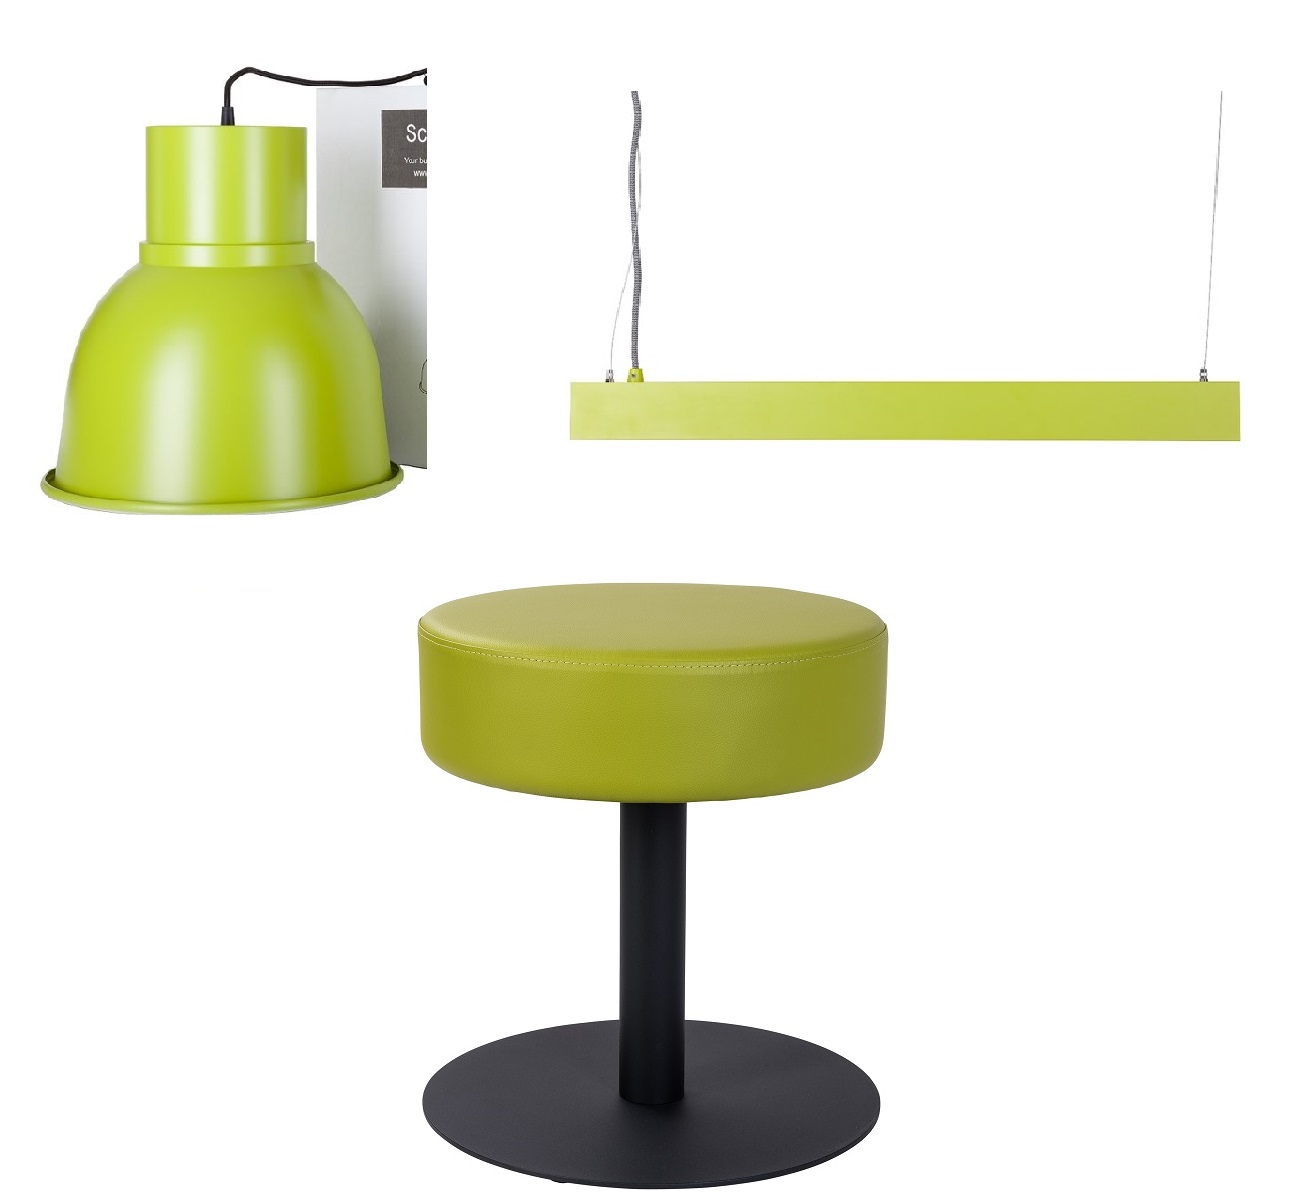 Color matched furniture and lighting